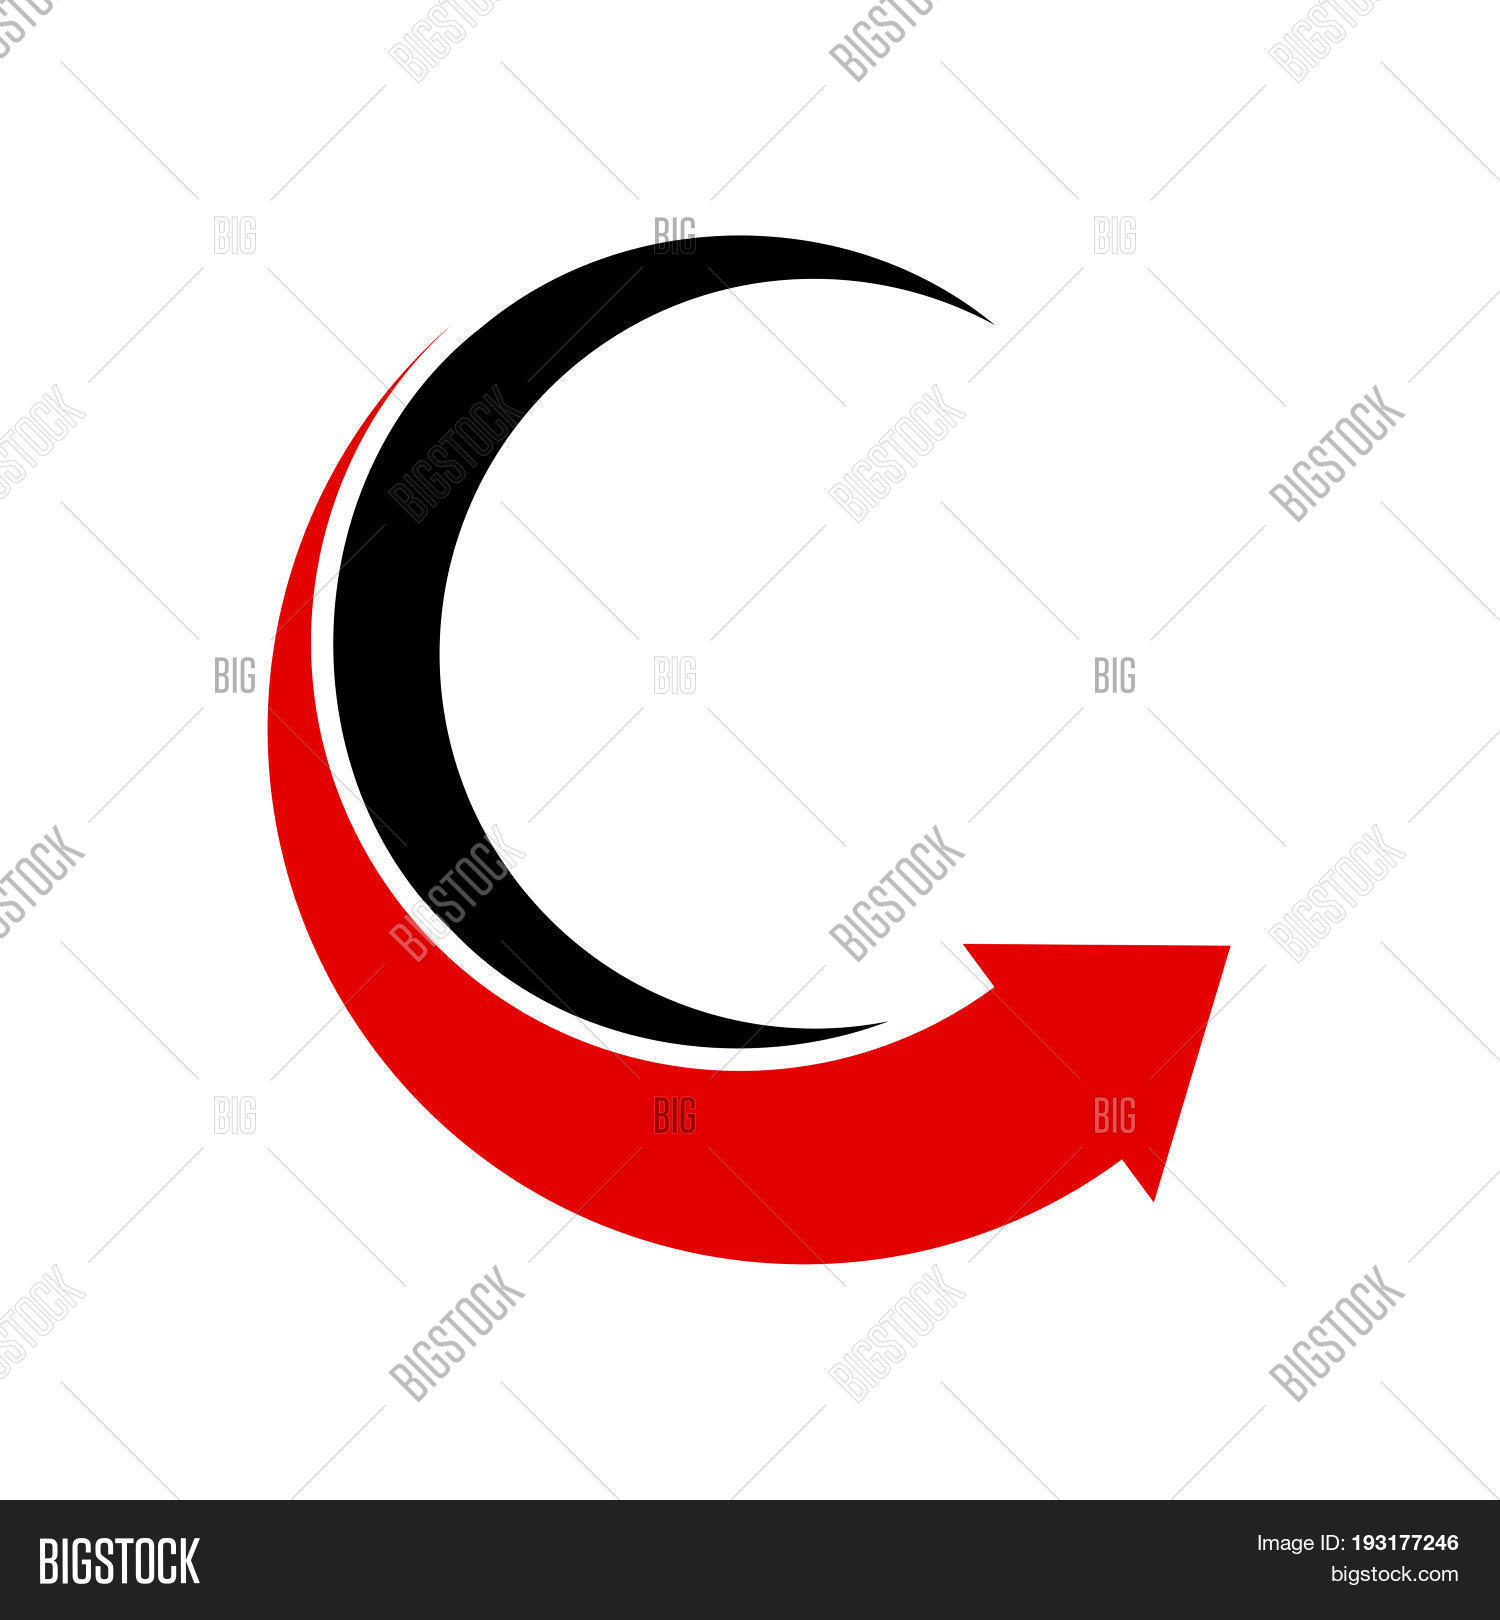 circle logo design vector photo free trial bigstock